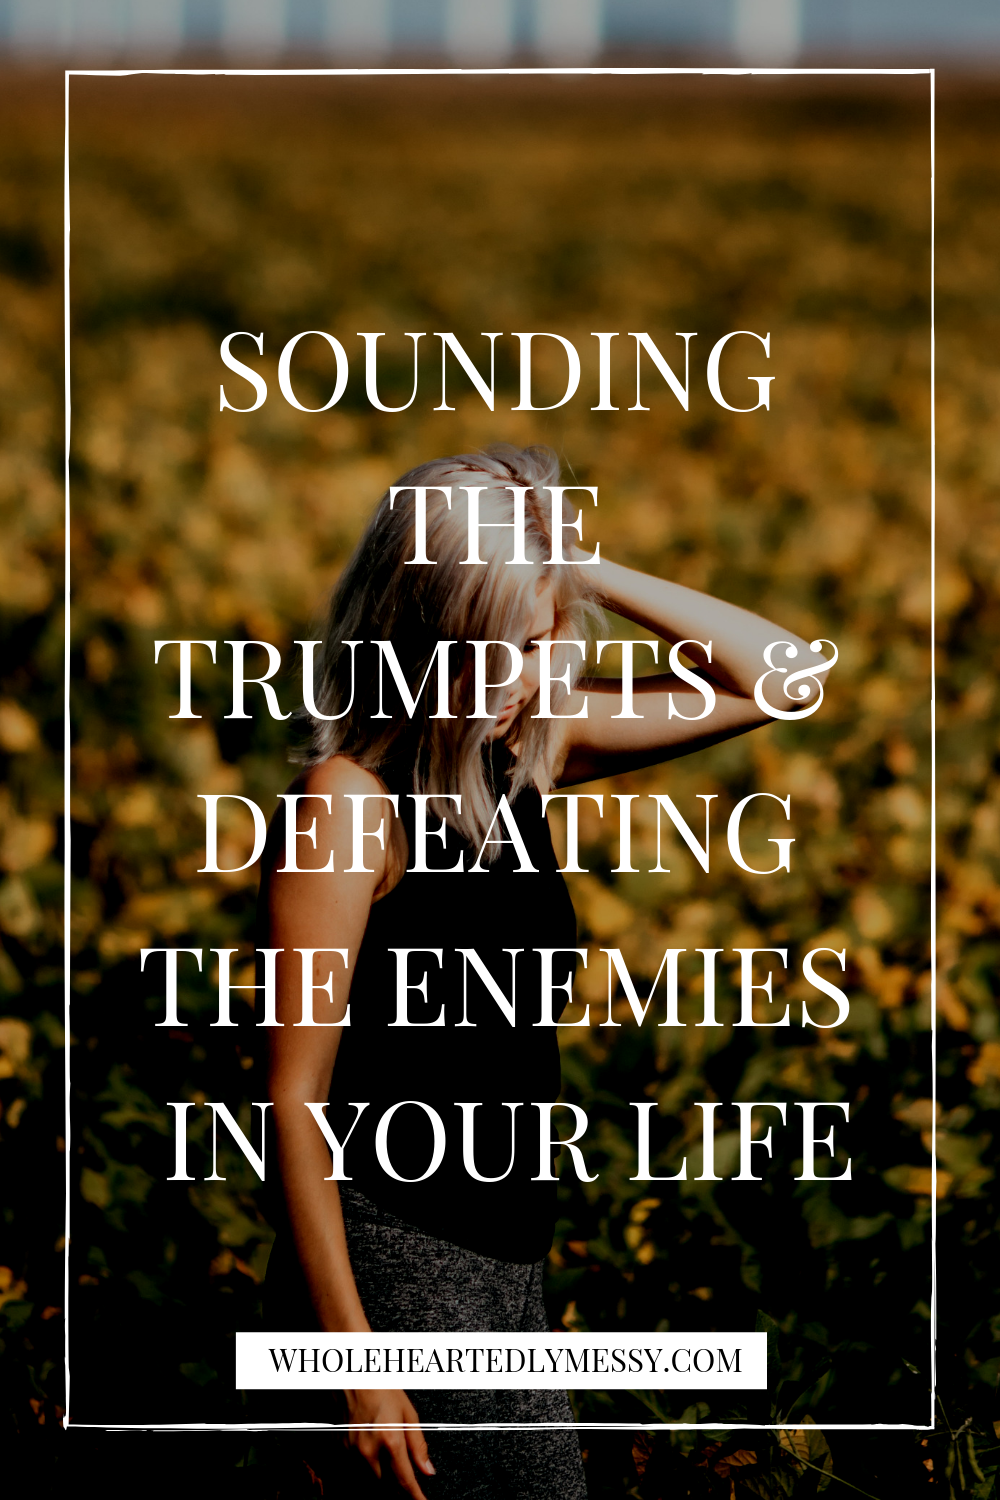 SOUNDING THE TRUMPETS AND DEFEATING THE ENEMIES IN YOUR LFIE.png